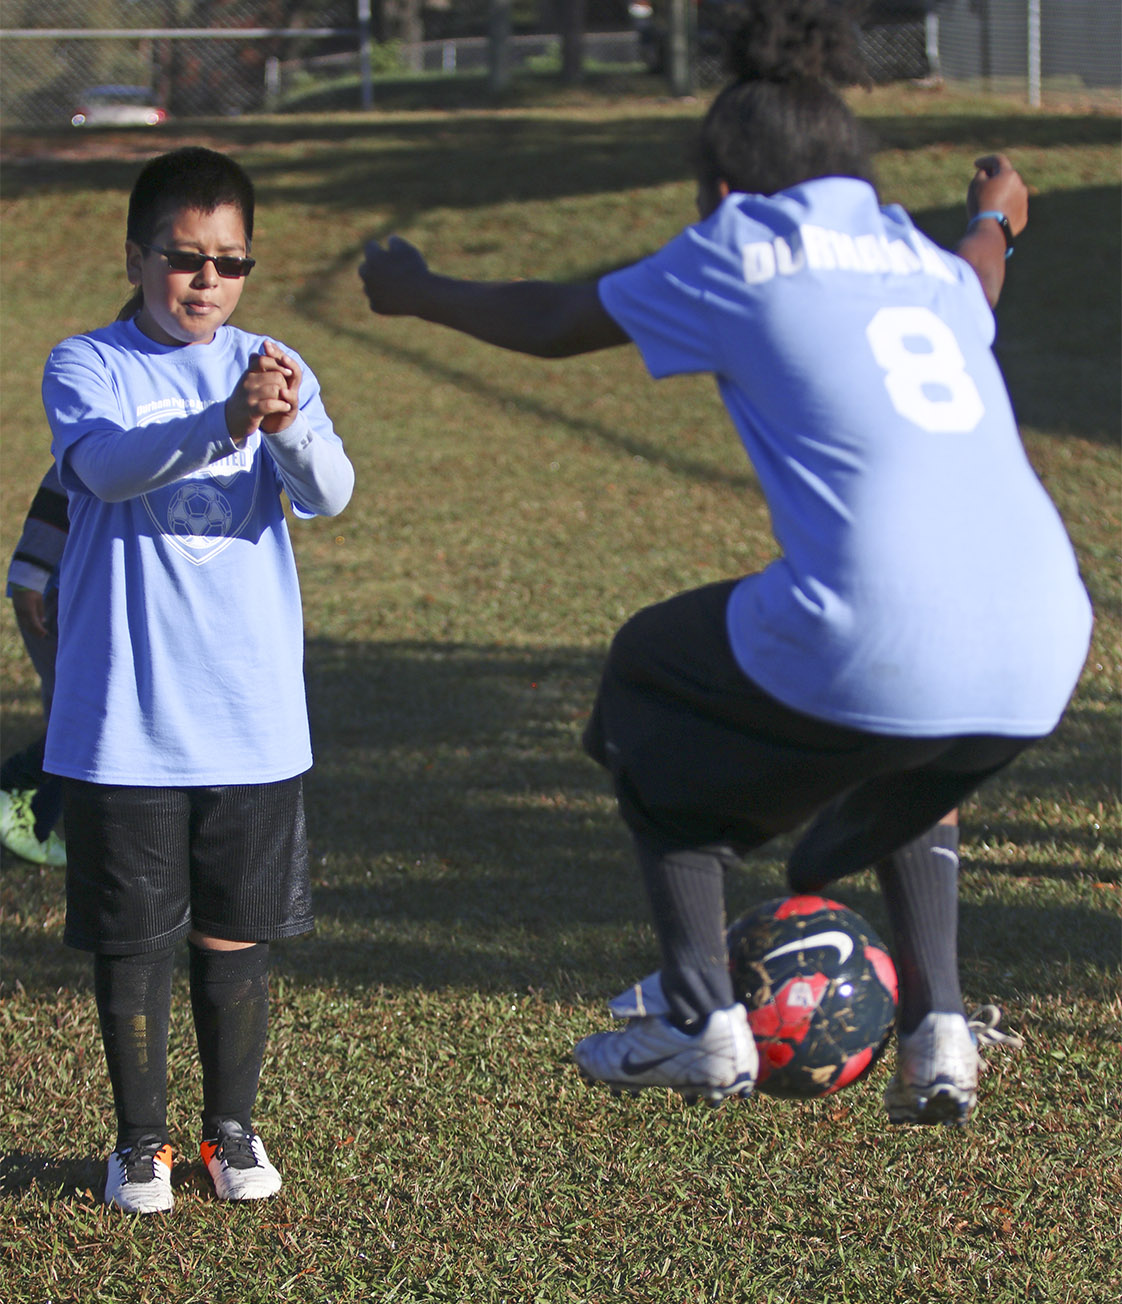 Teammates Kayden Sims and Juan Arenas-Villalobos goof off on the sidelines while the rest of their Eastway Elementary School team takes on Merrick-Moore Elementary School as a part of the Police Athletic League on Saturday, Nov. 5.